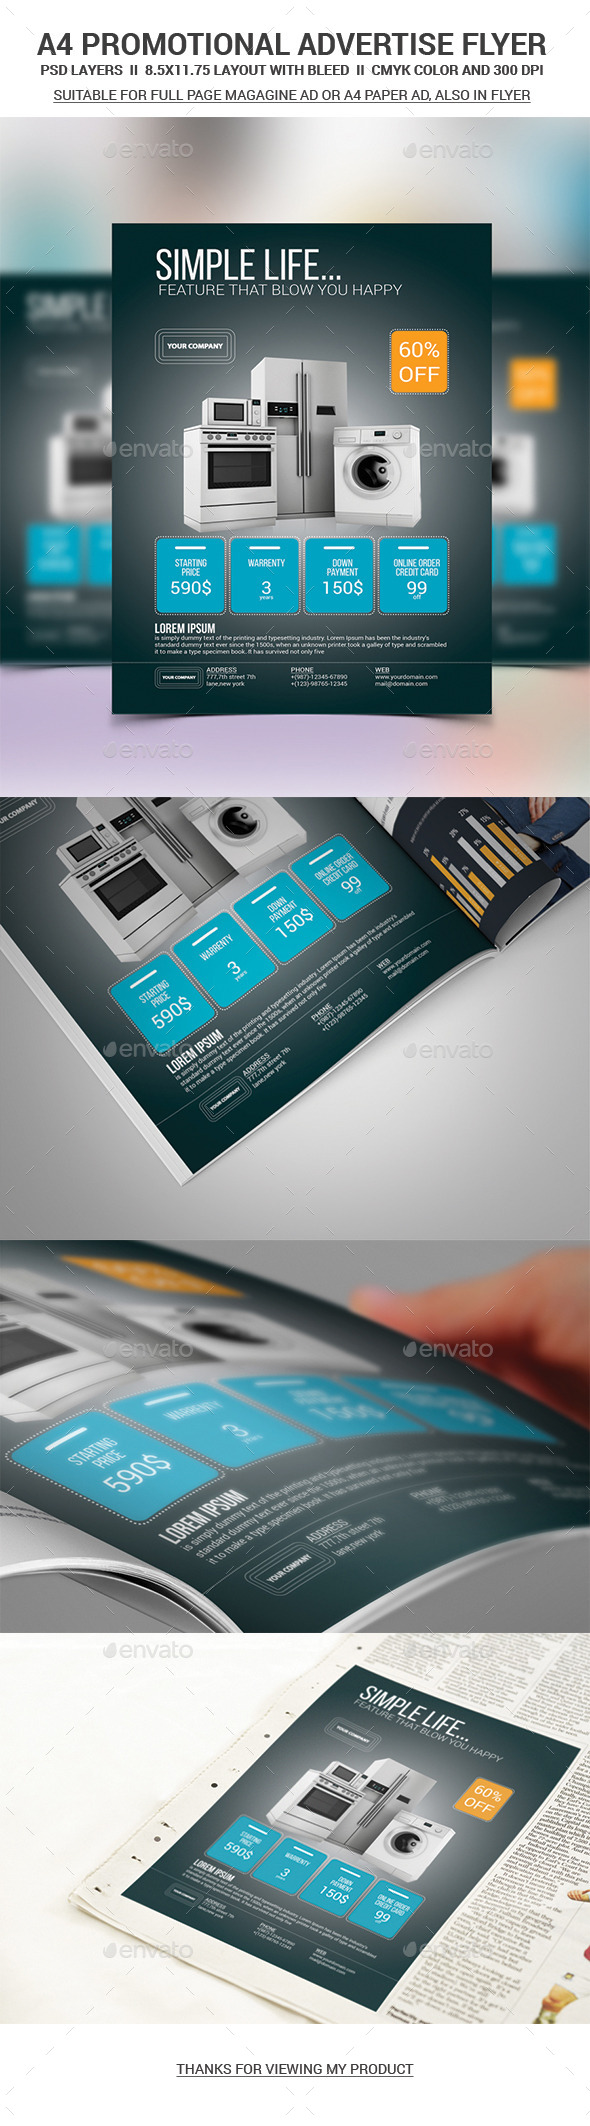 GraphicRiver Promotional Advertise Flyer 11562493